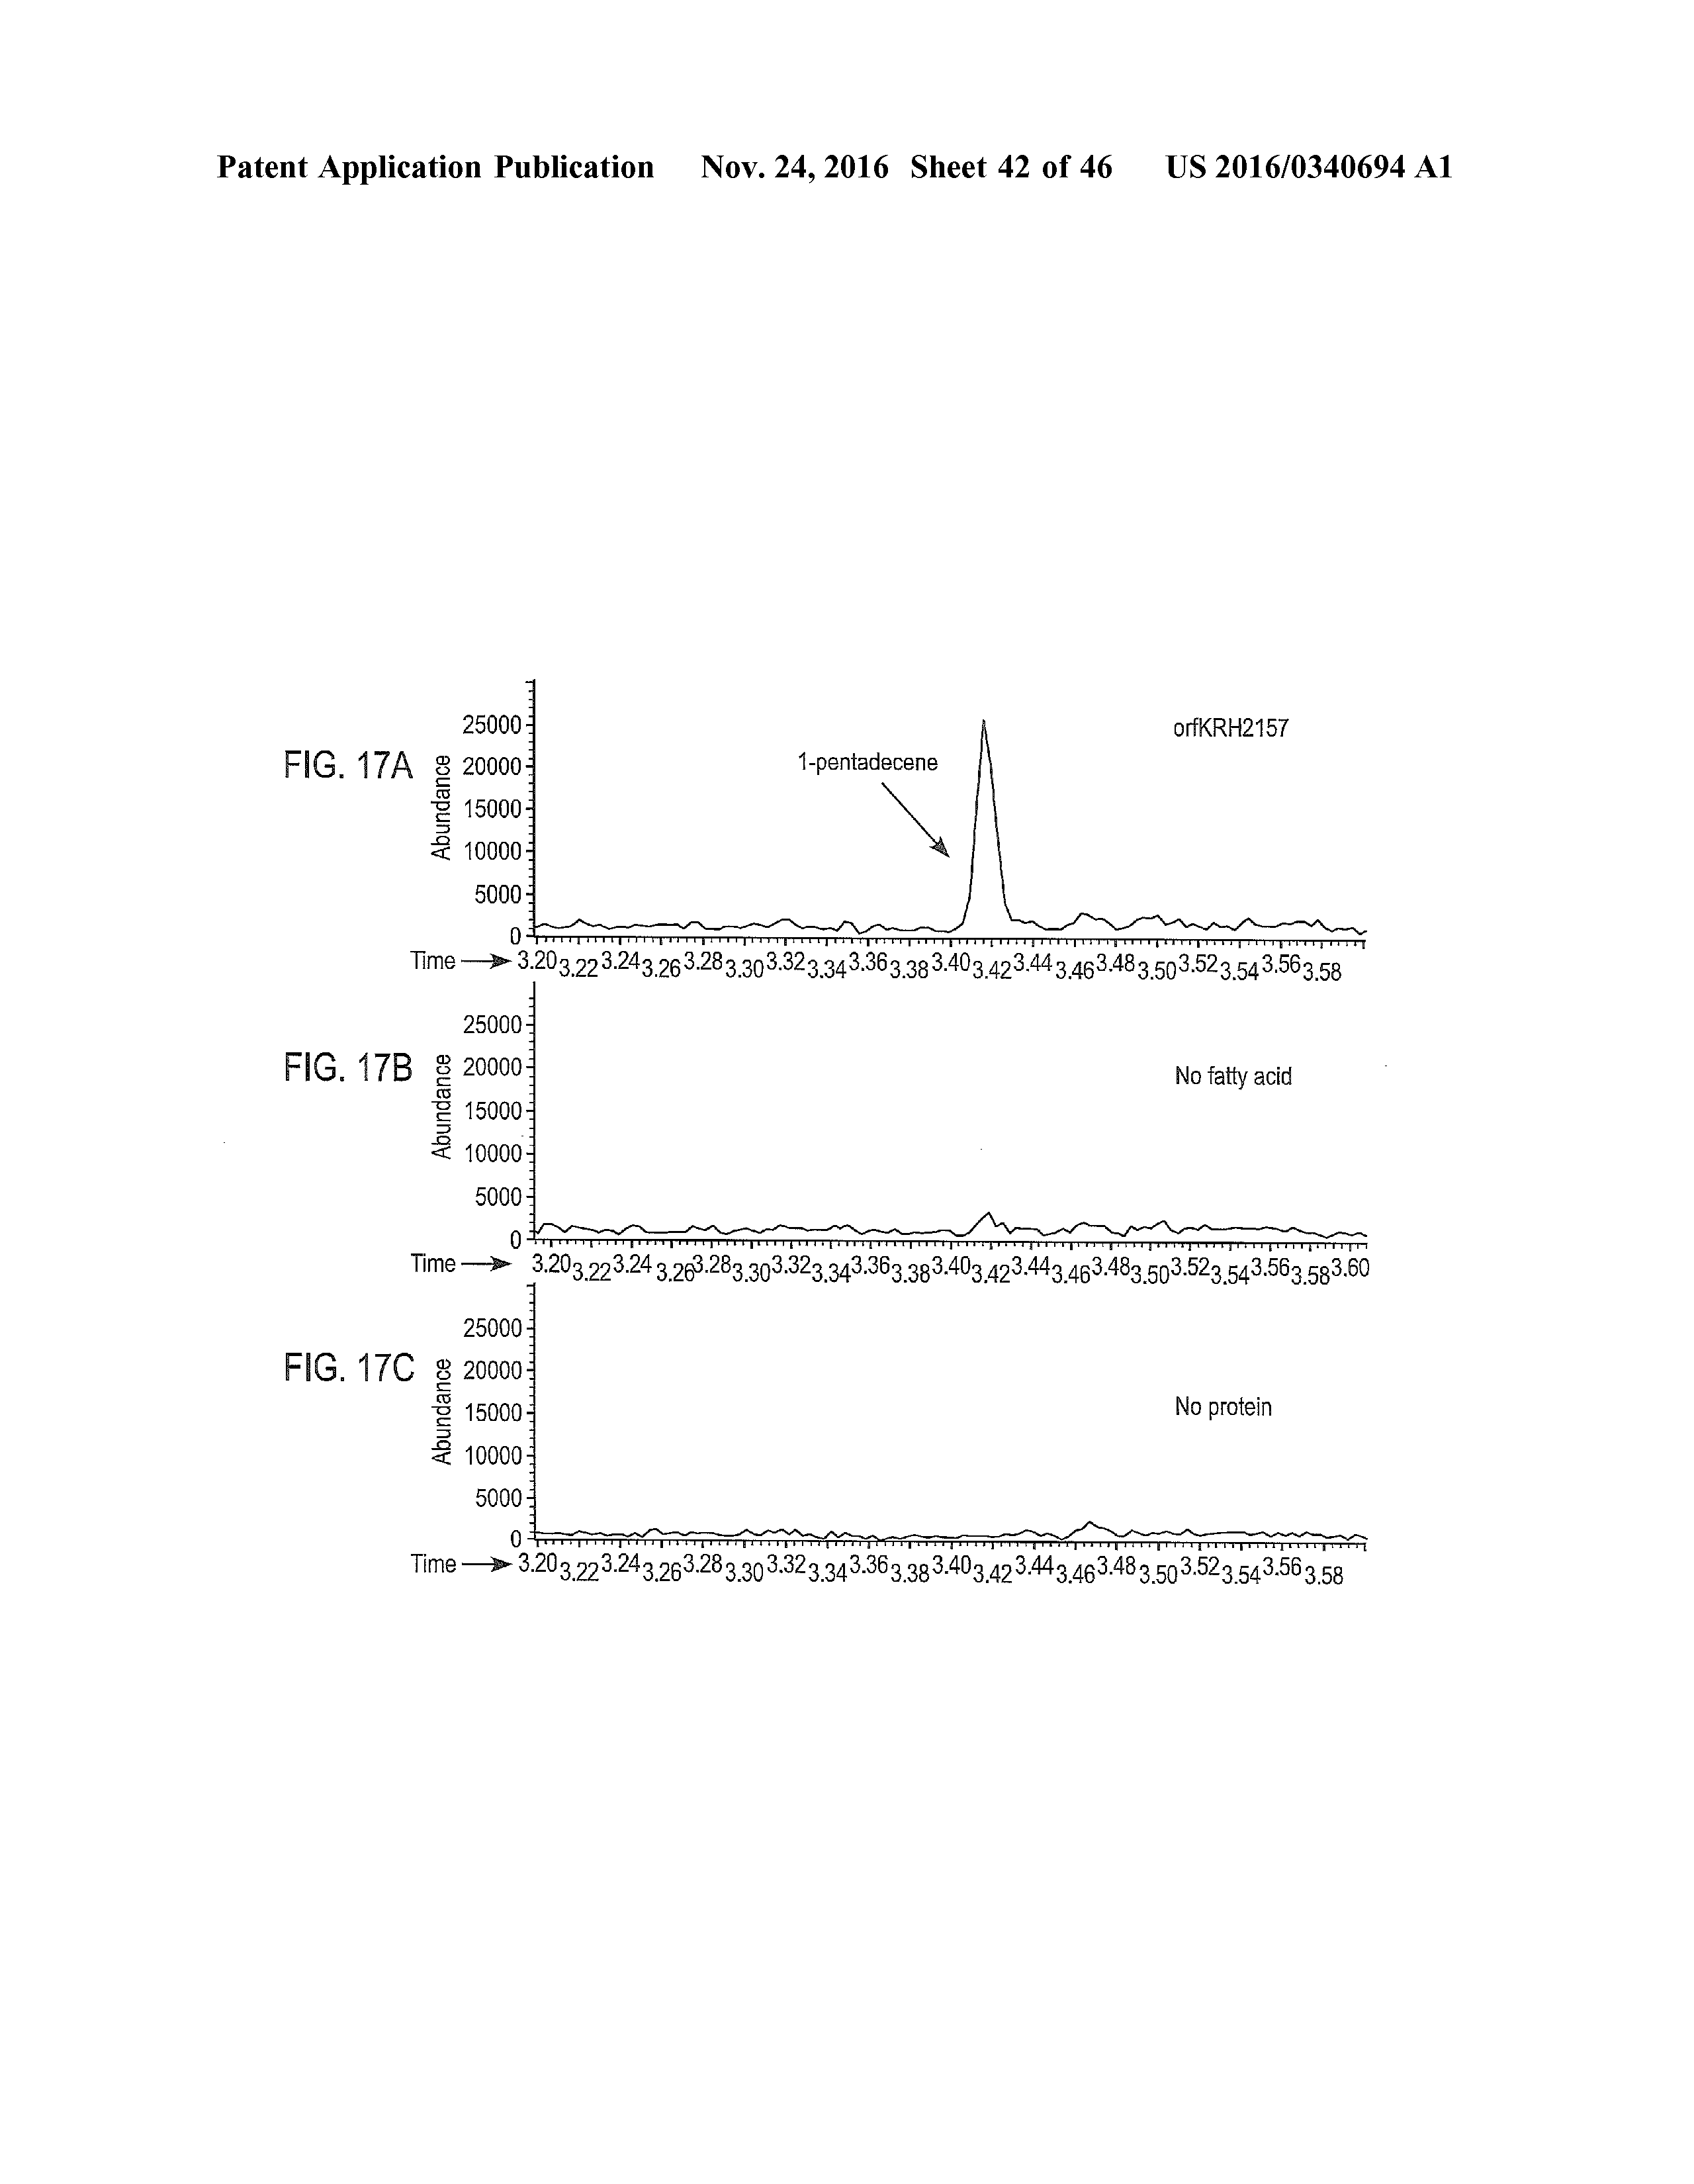 US 2016/0340694 A1 - Methods And Compositions For Producing